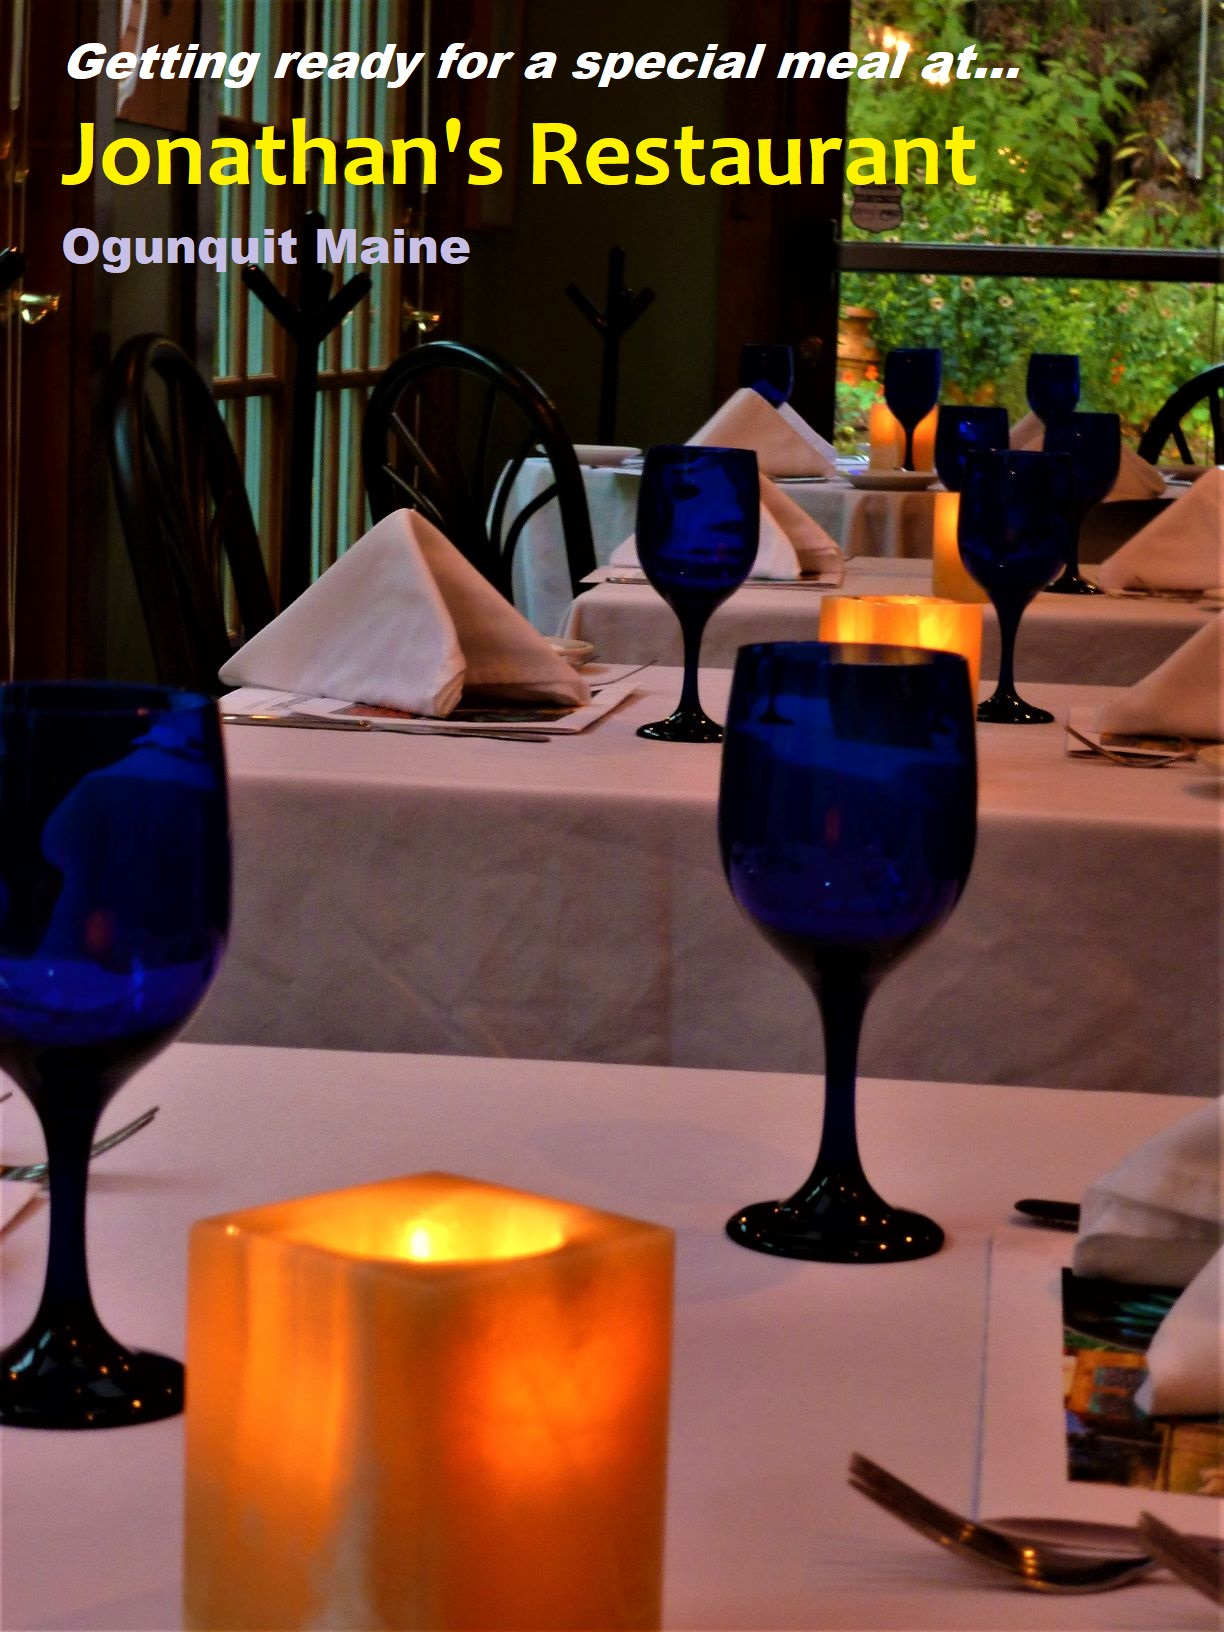 Finding a very special restaurant in Ogunquit, Maine...